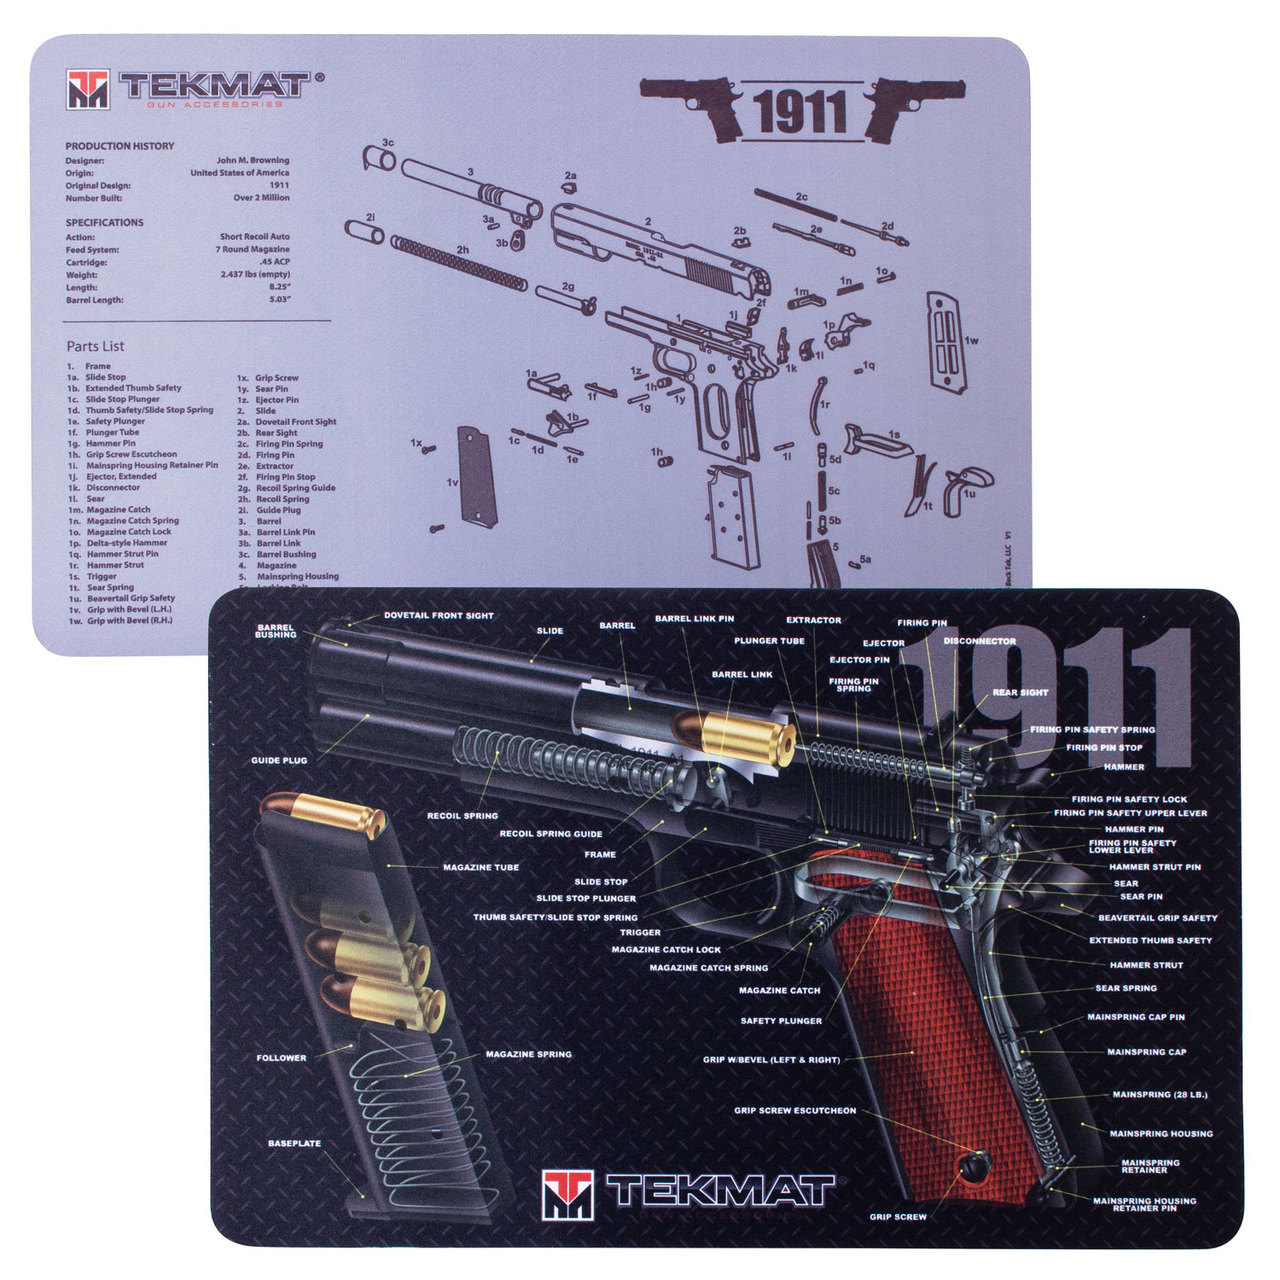 Tekmat Handgun Gunmats Schematic Cutaway Showing Slide Cycle And Case Ejection 1911 Double Sided